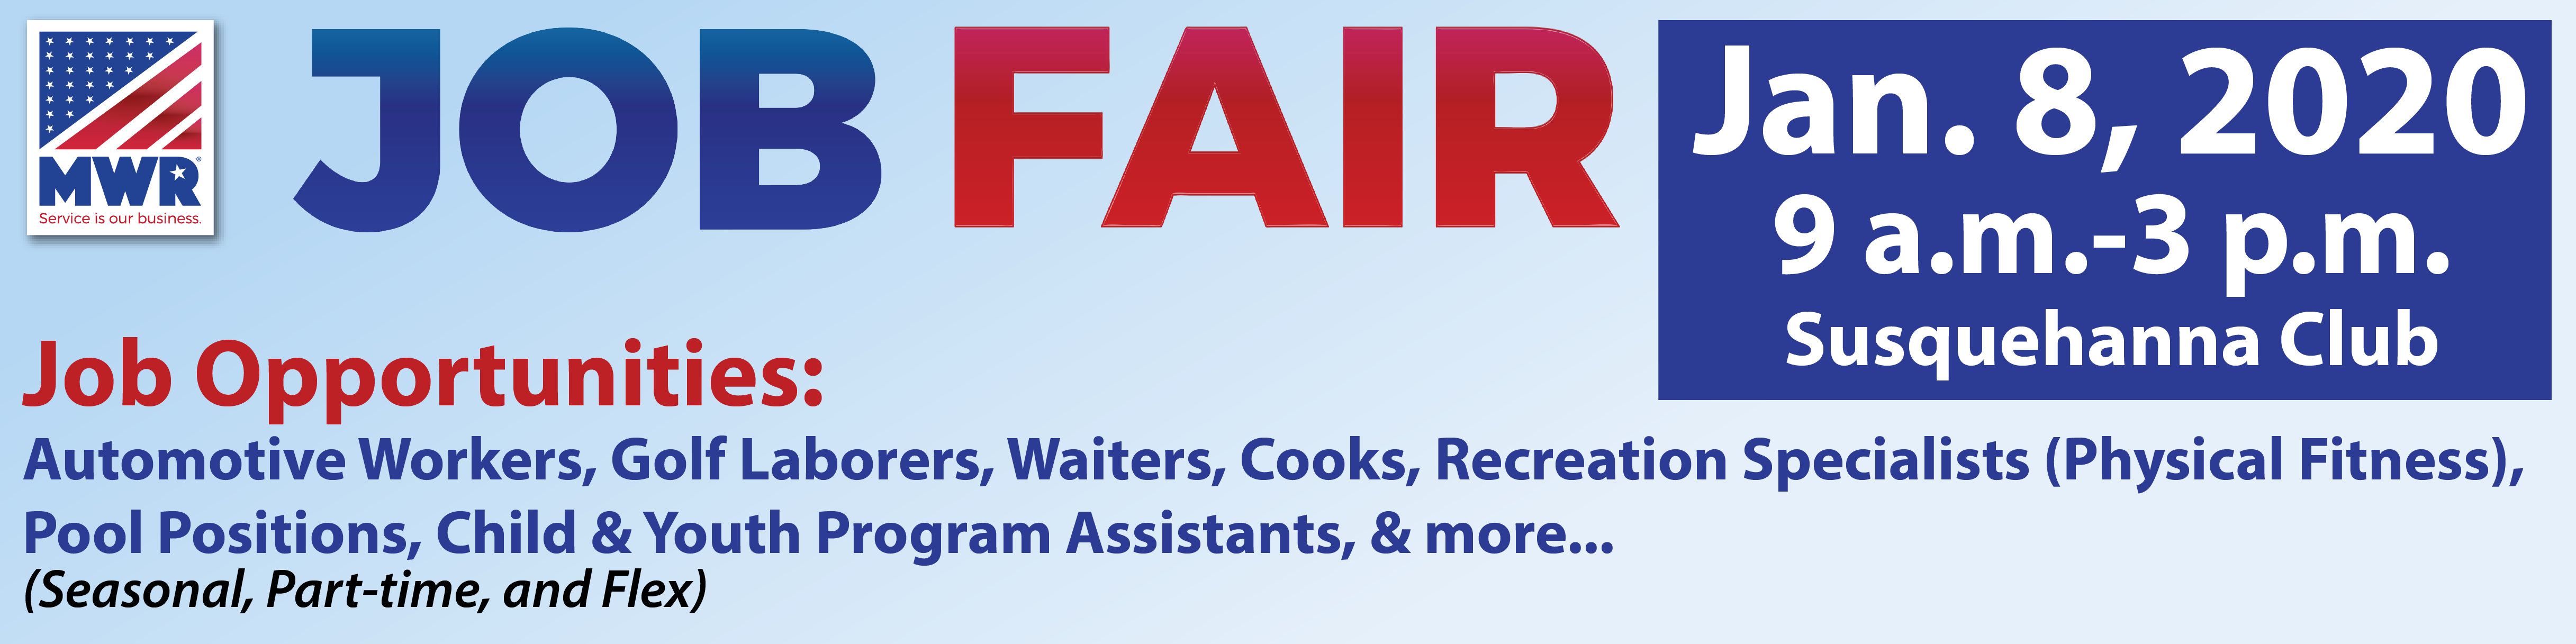 Job Fair_Jan 20_Web Header Graphic_1168x292